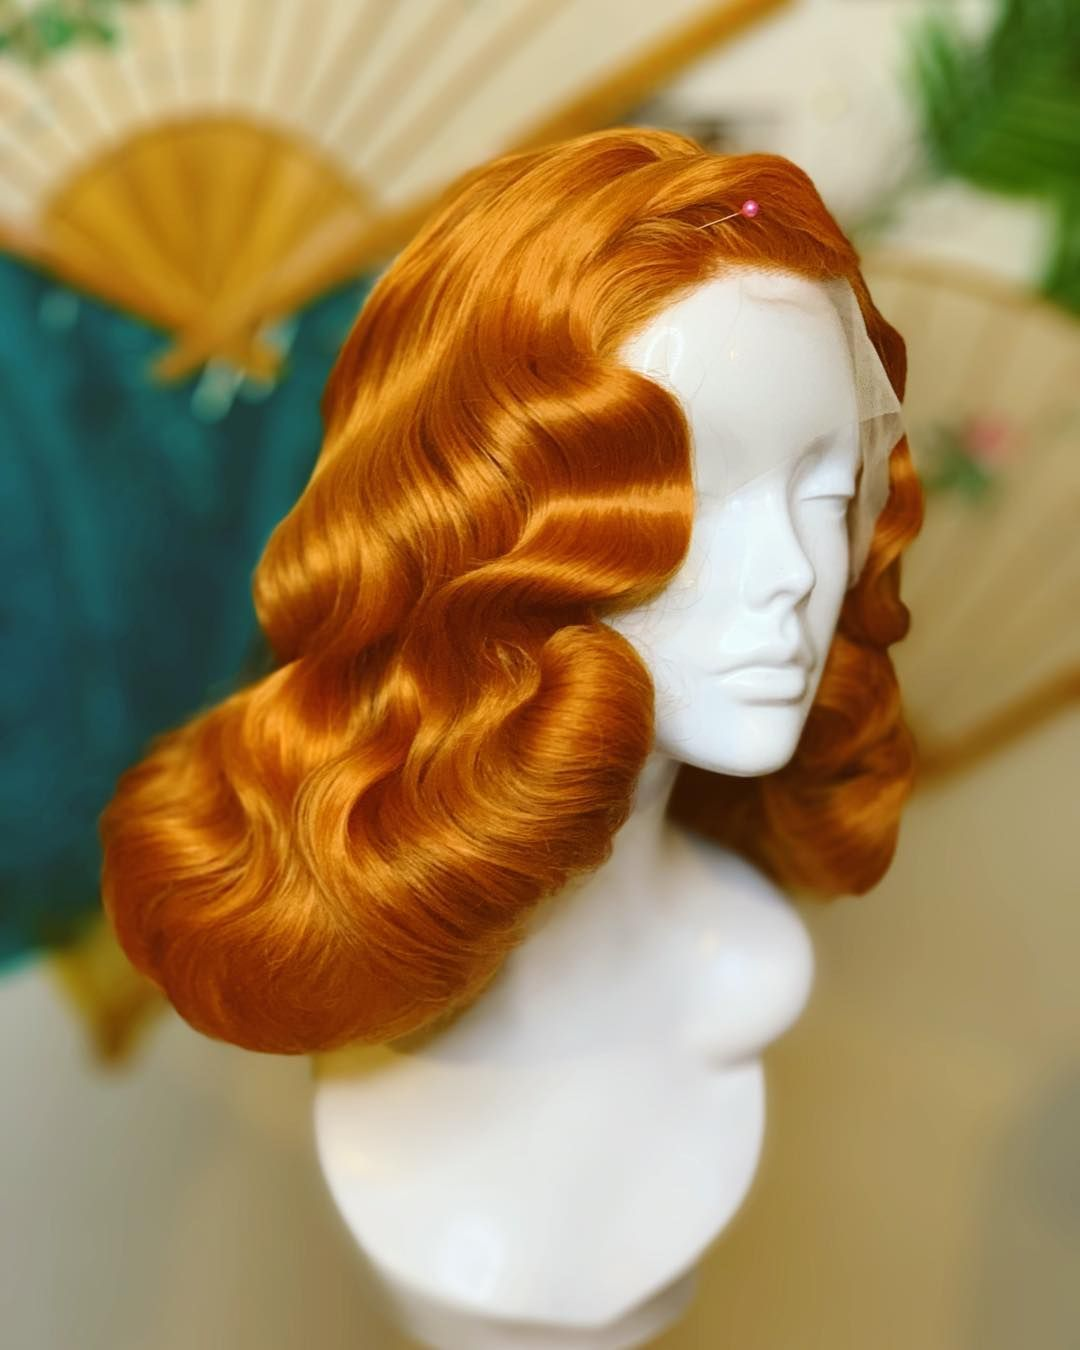 Necia S Hairstyling On Instagram Copper Custom Neciashairstyling Itsallaboutthebrushout Hair Hairstylist Hair Experiment Fake Hair Ombre Hair Blonde